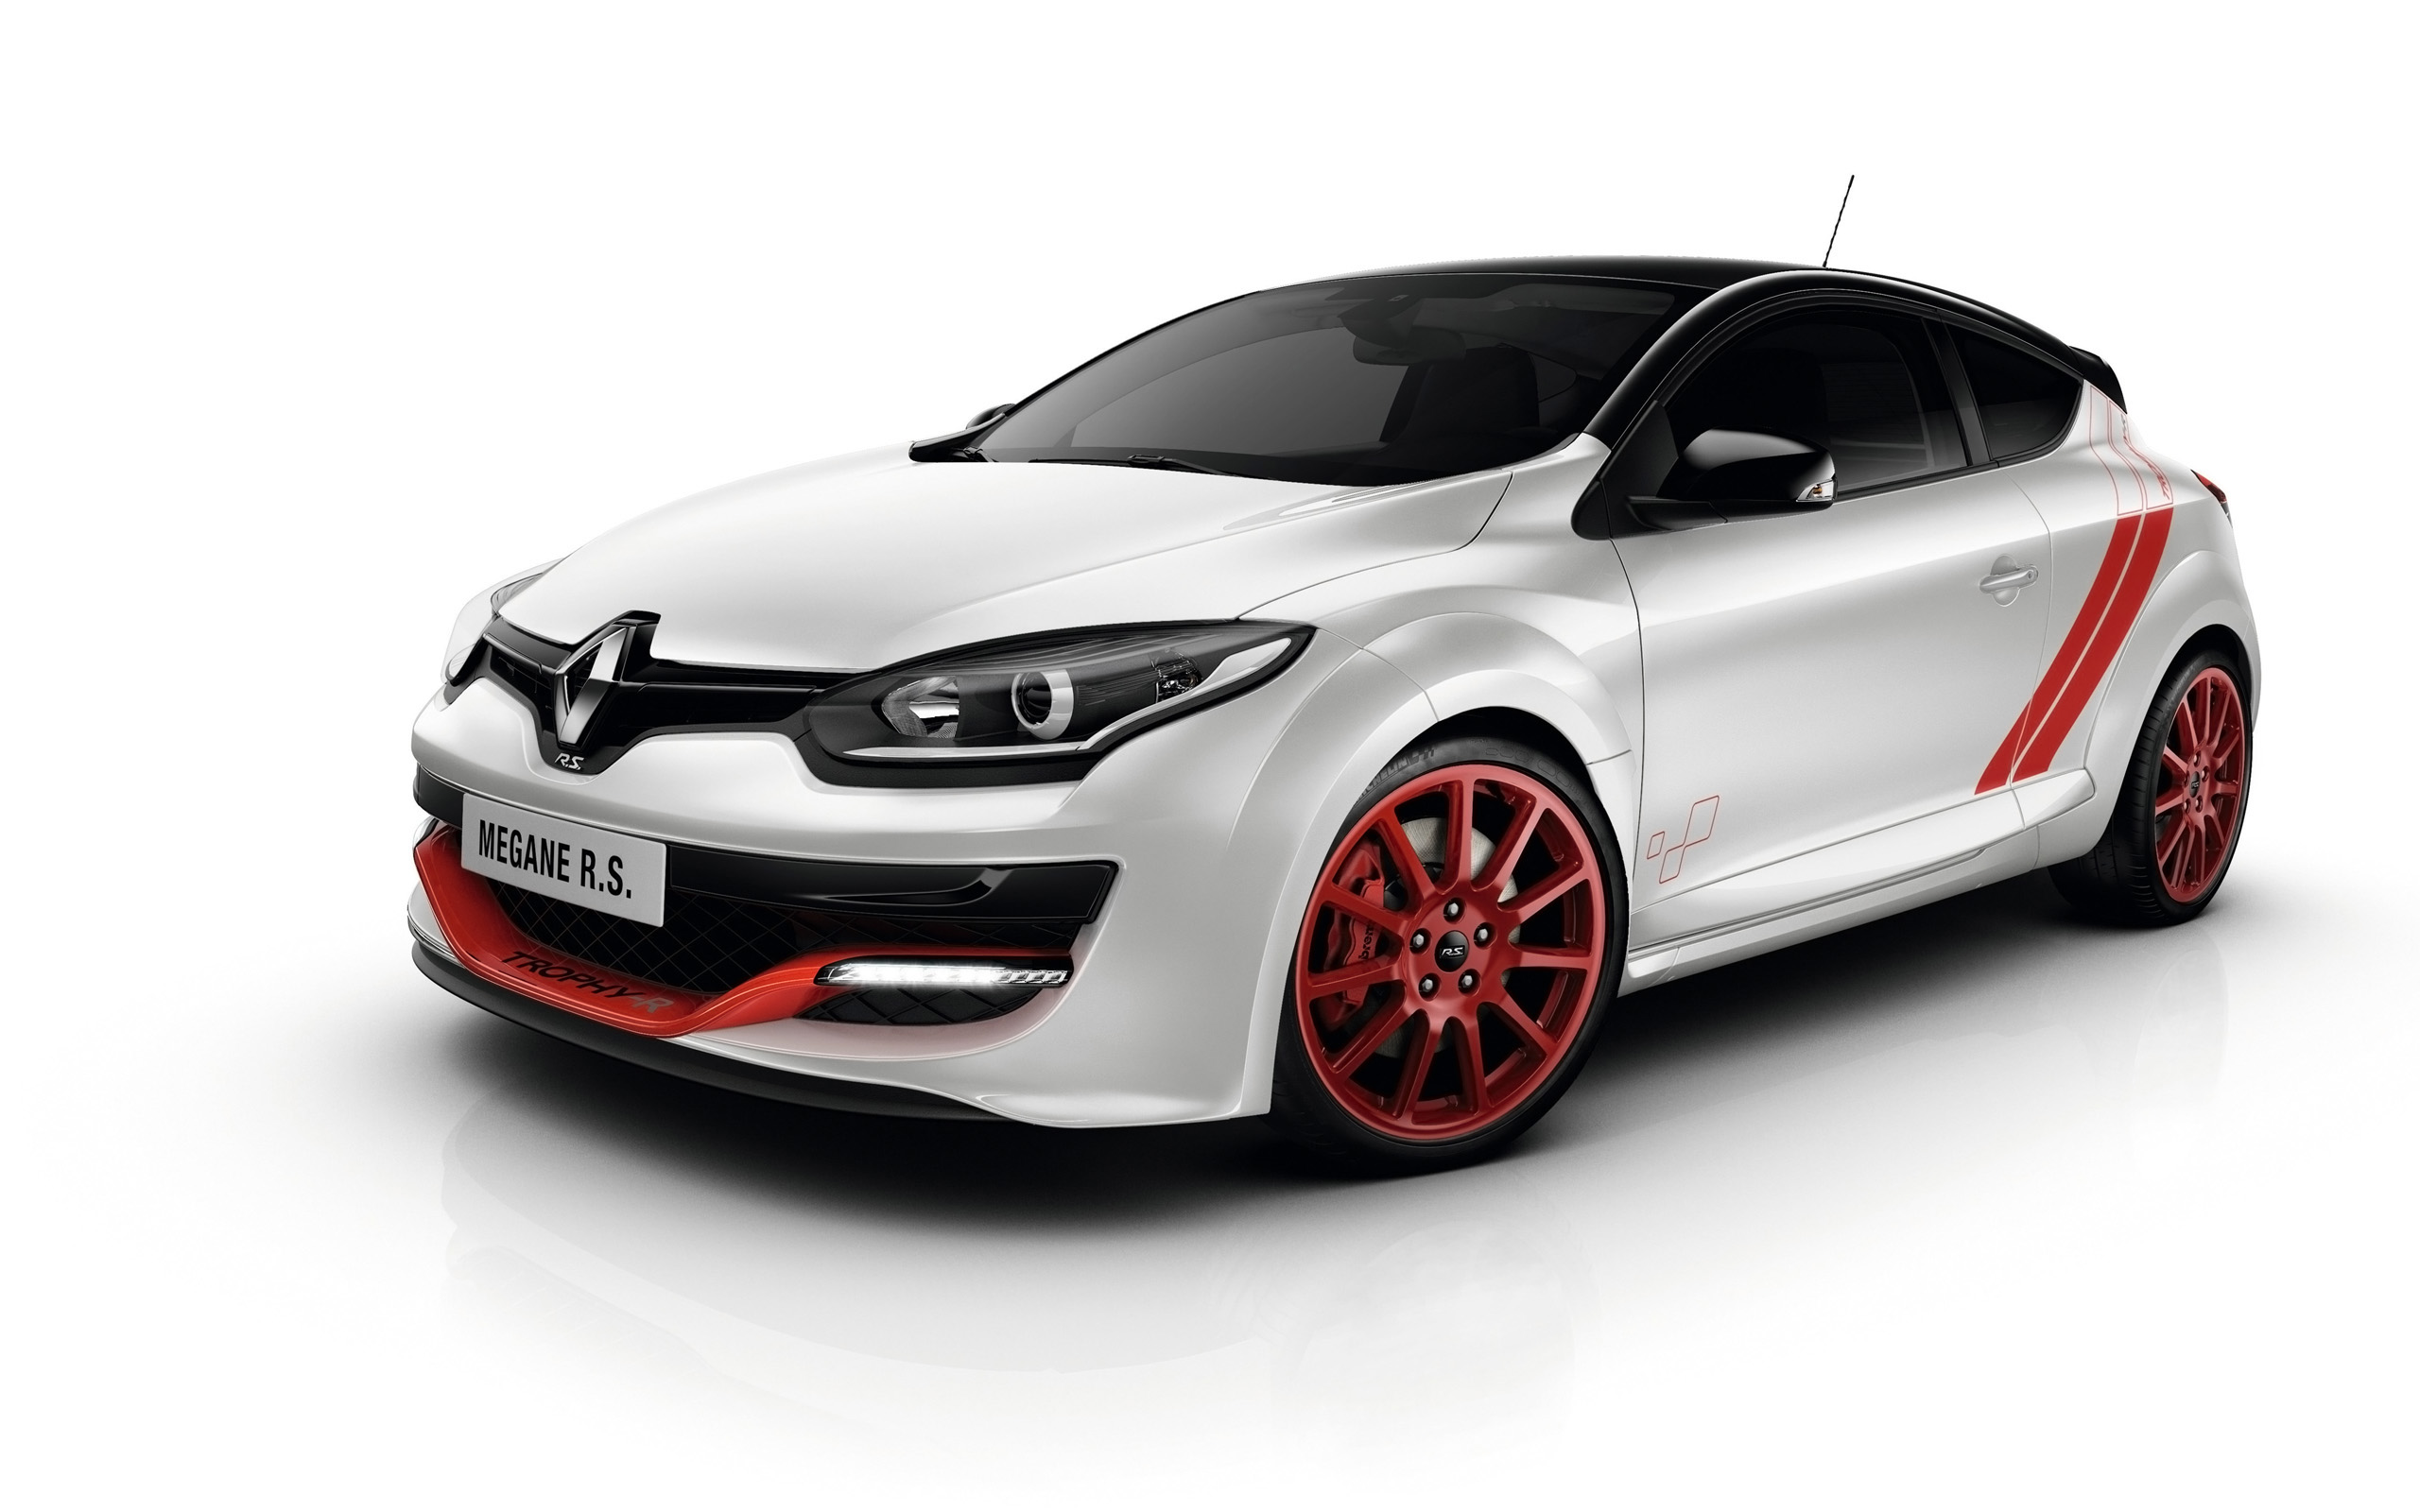 renault megane rs 275 trophy r 2014 wallpaper hd car wallpapers. Black Bedroom Furniture Sets. Home Design Ideas